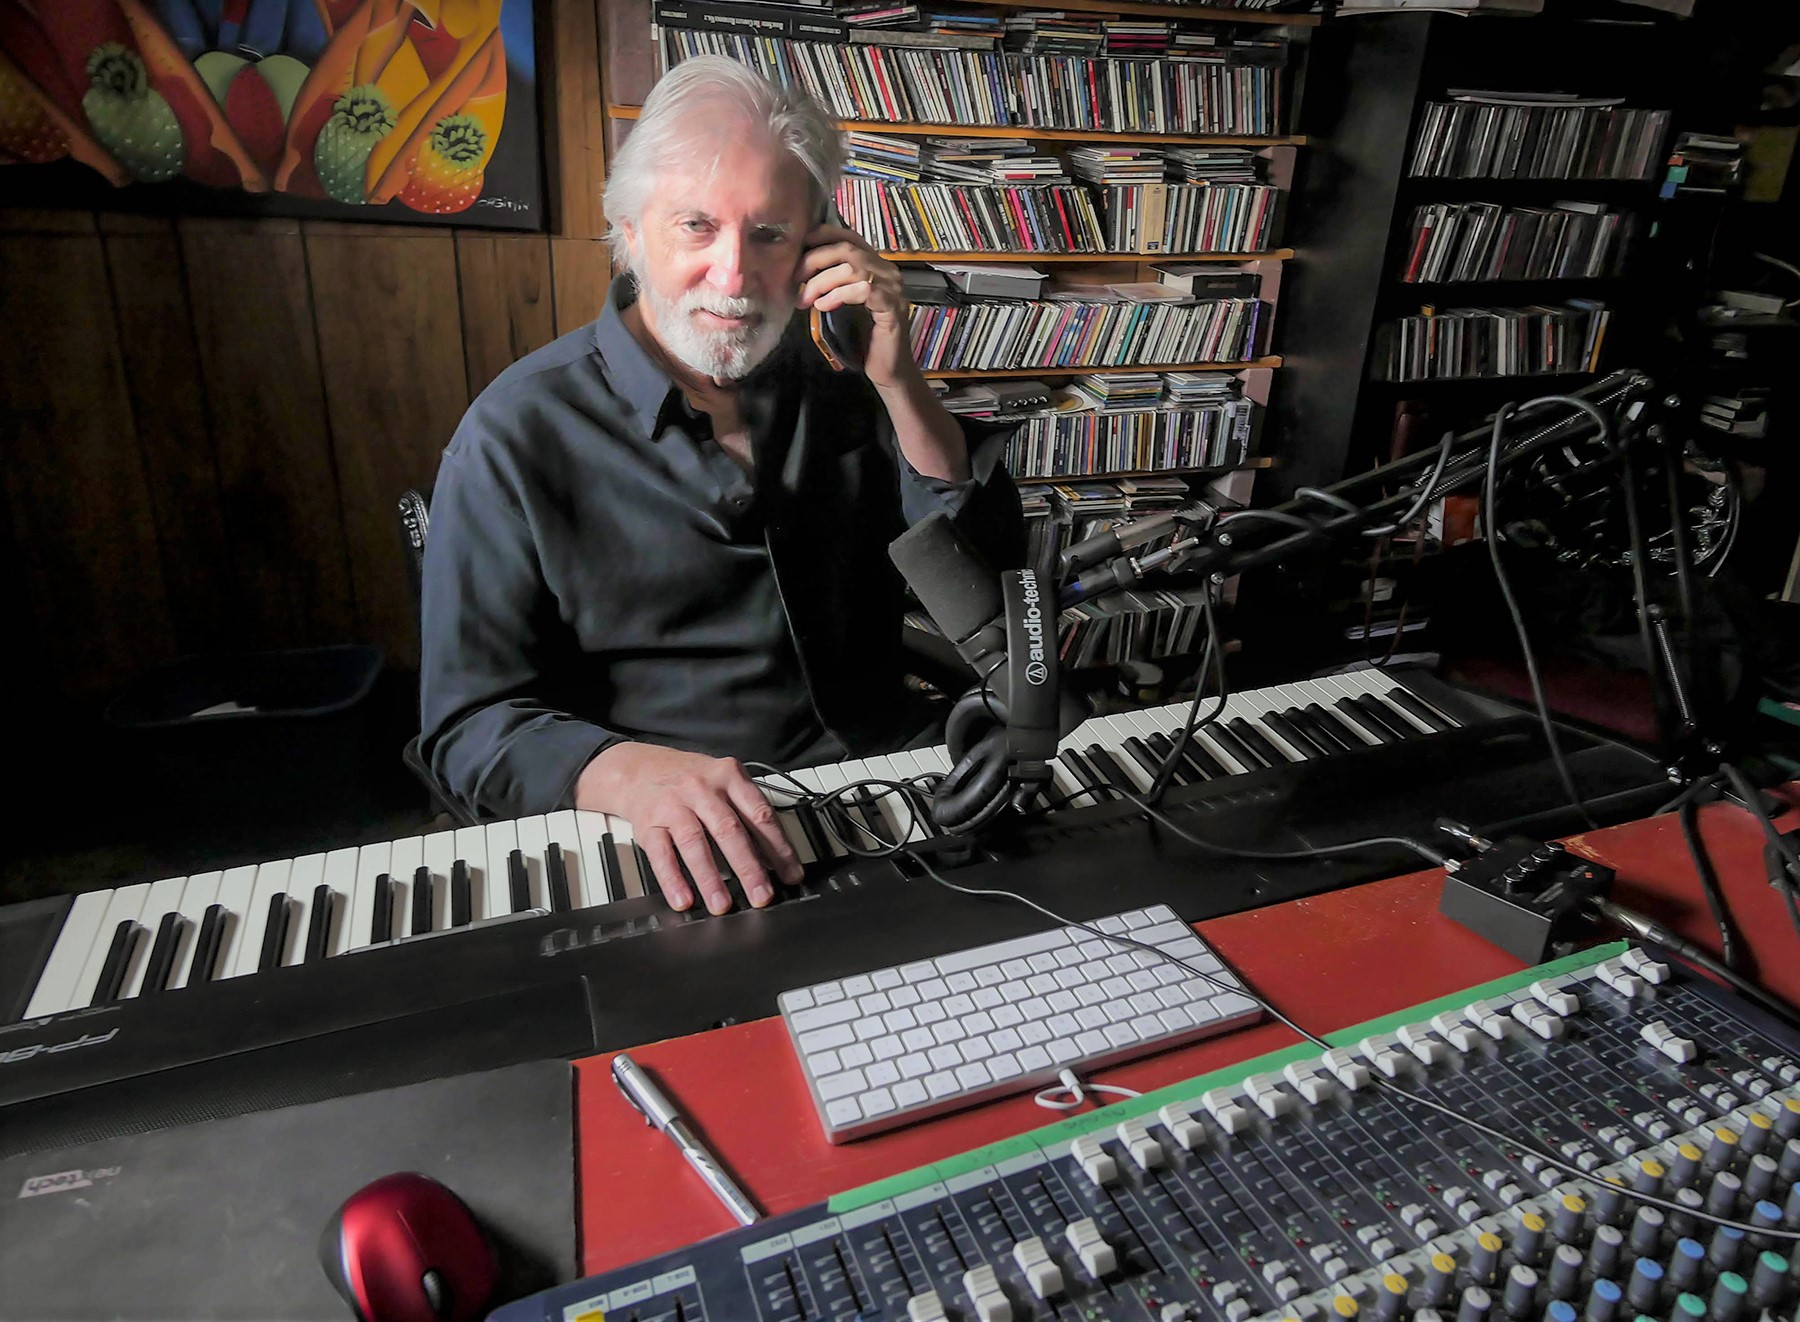 Bill at work in his home studio. Pic: Kris King